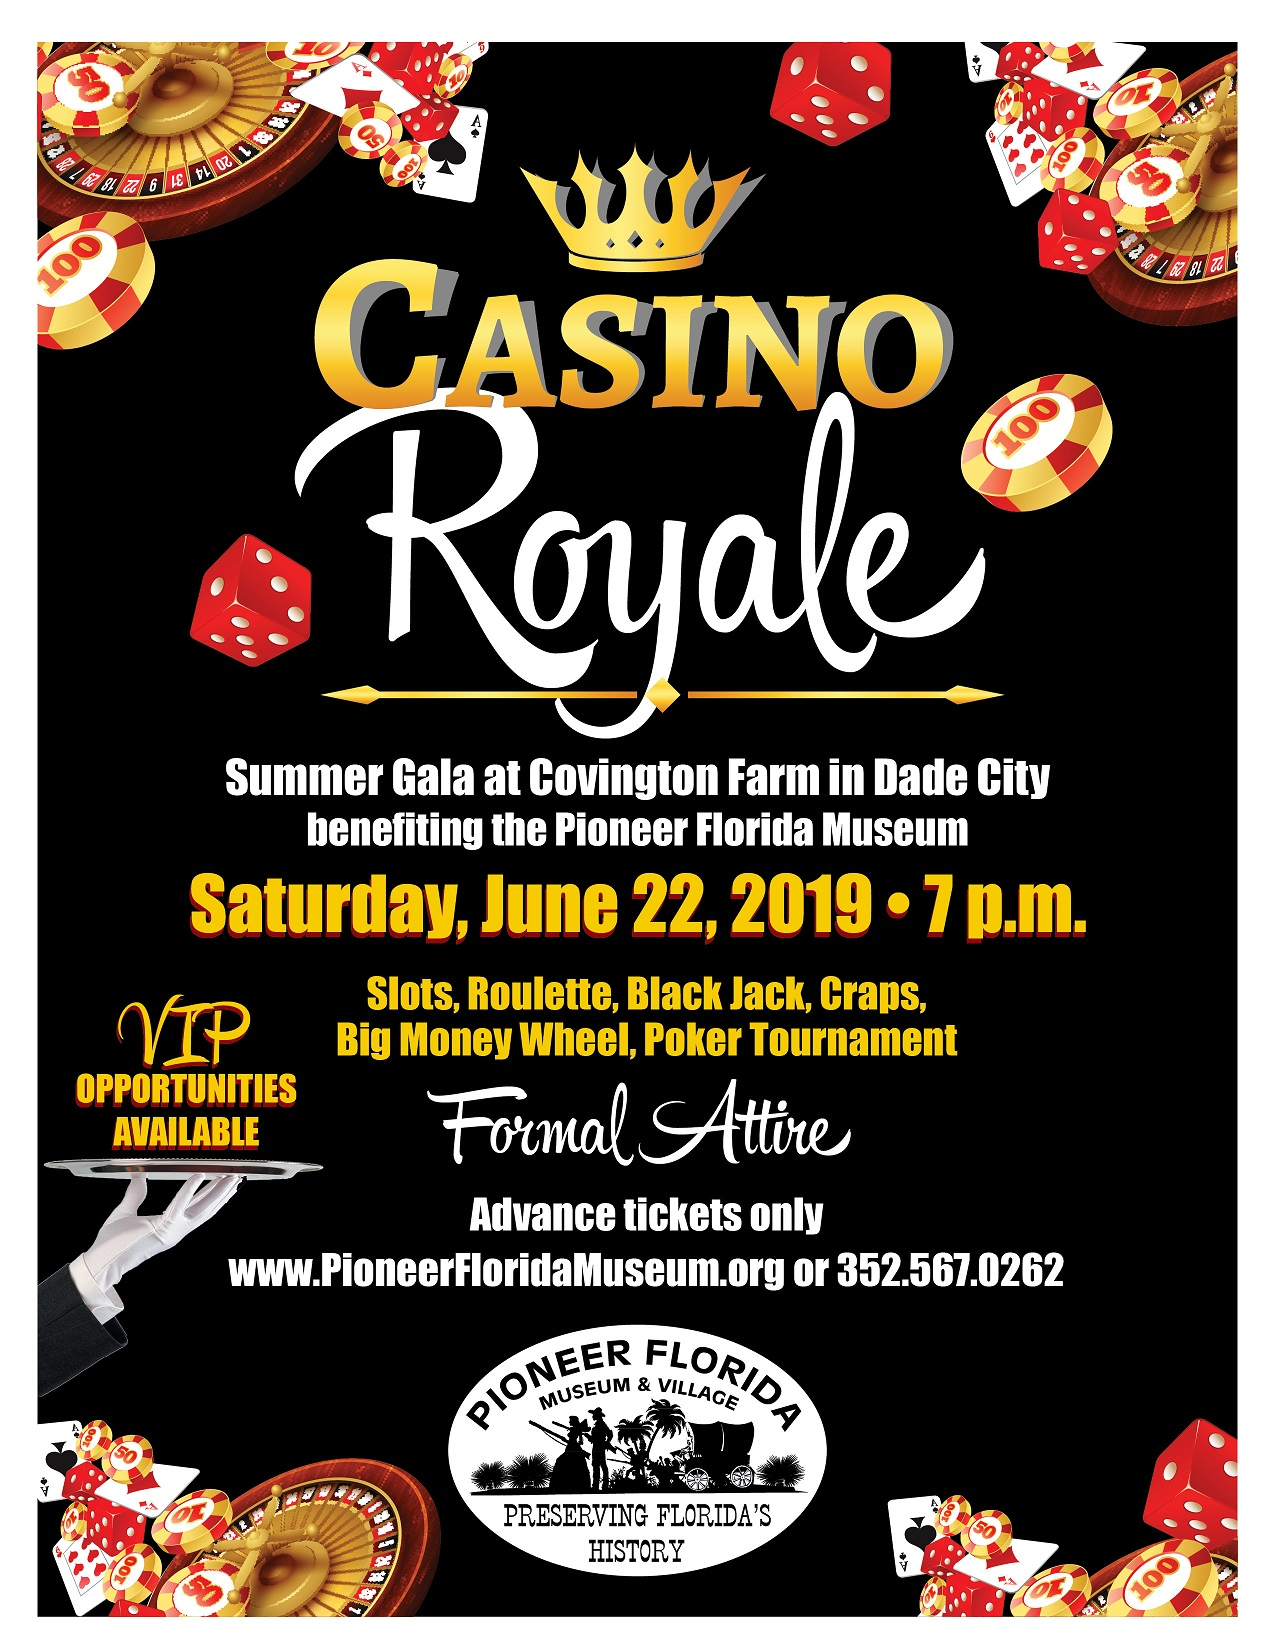 Casino Royale 2019 Flyer small